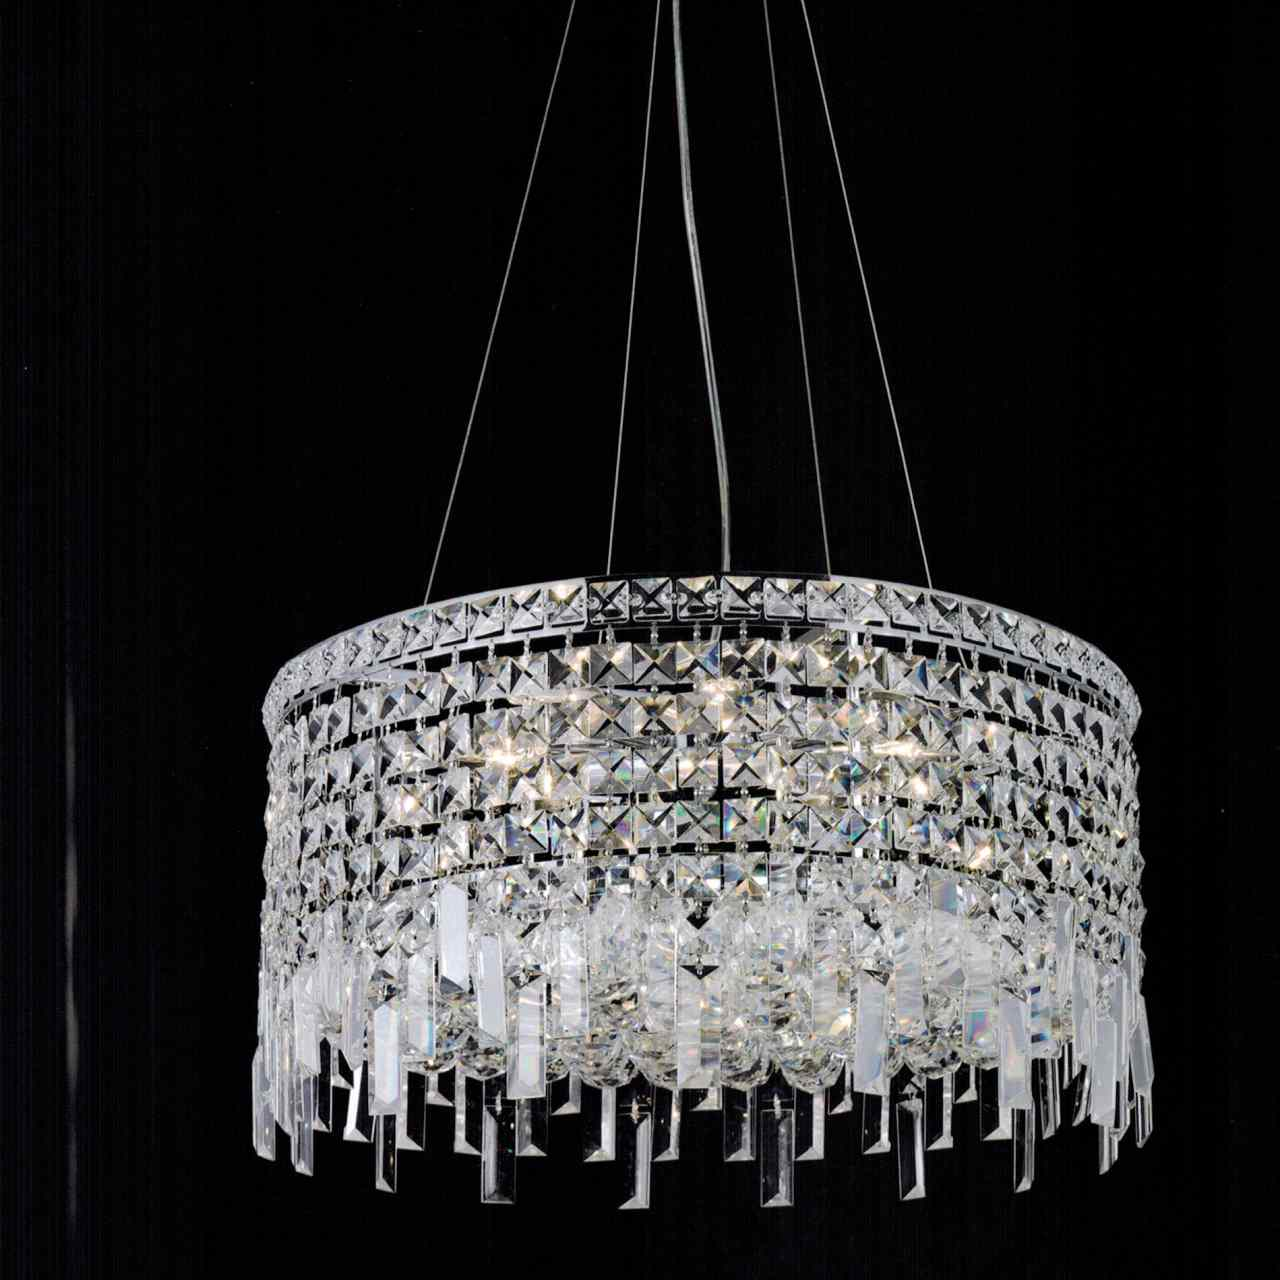 Picture of 16  Bossolo Transitional Crystal Round Pendant Chandelier Polished Chrome 5 Lights  sc 1 st  Brizzo Lighting Stores : crystal light pendant chandeliers - azcodes.com